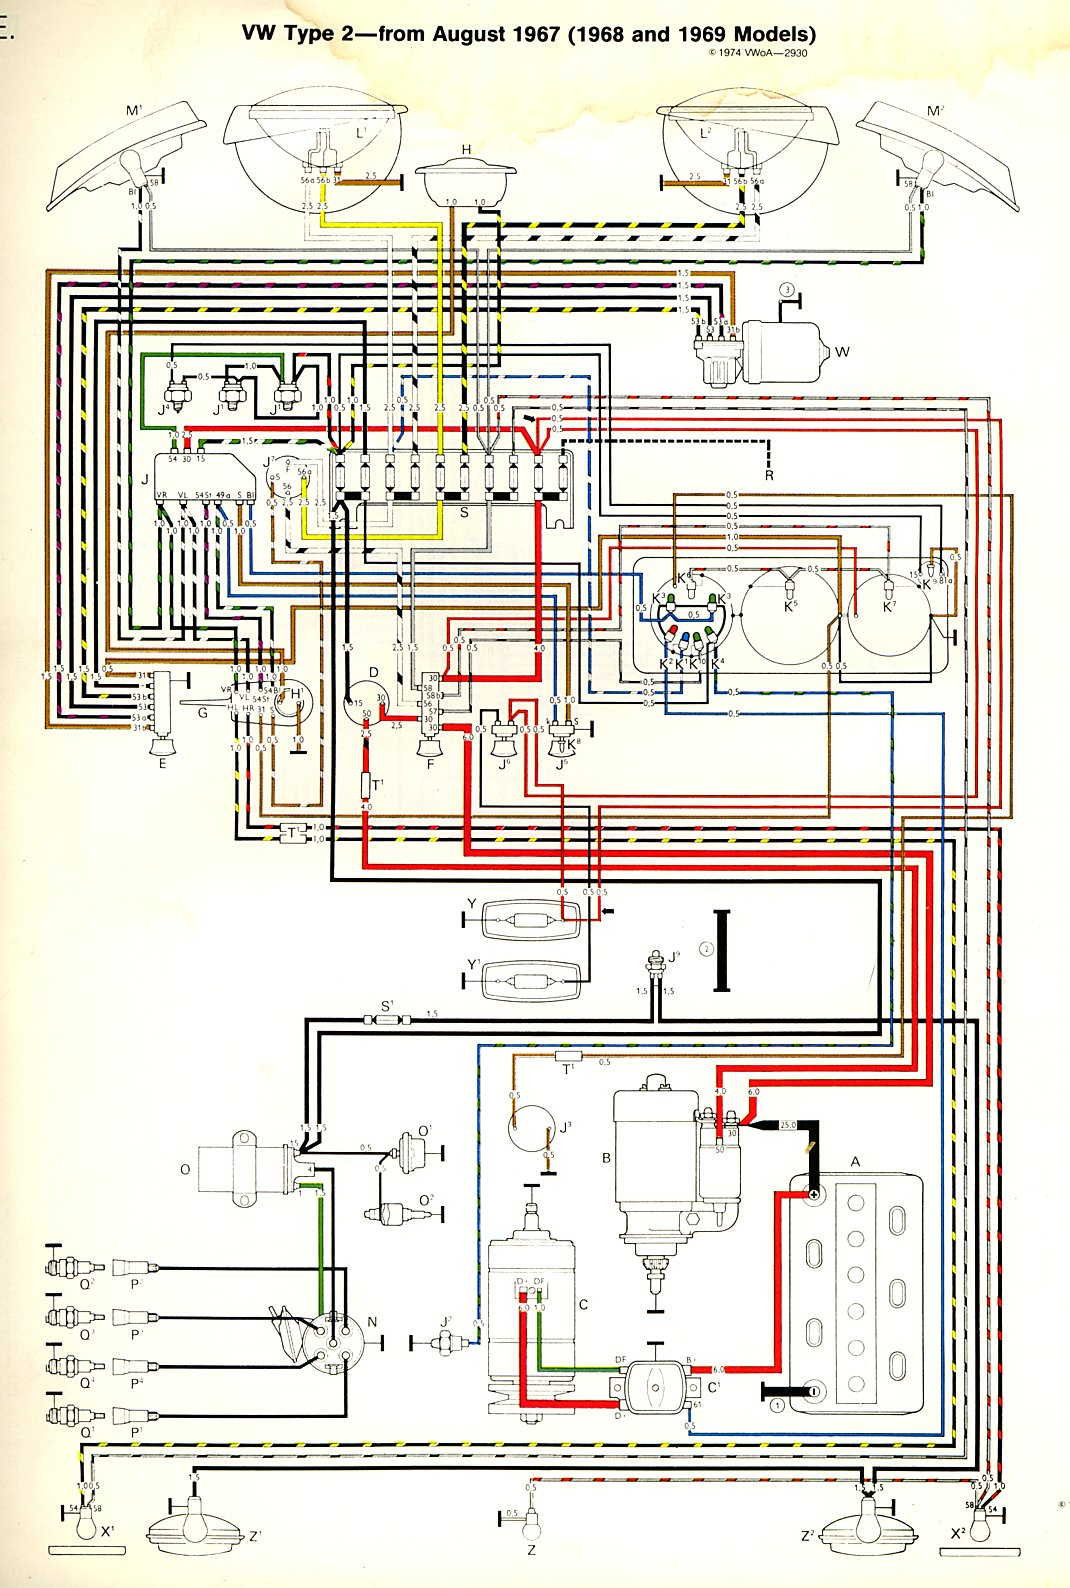 68 vw bug fuse diagram wiring diagram ebook 1968 vw bug wiring schematic wiring